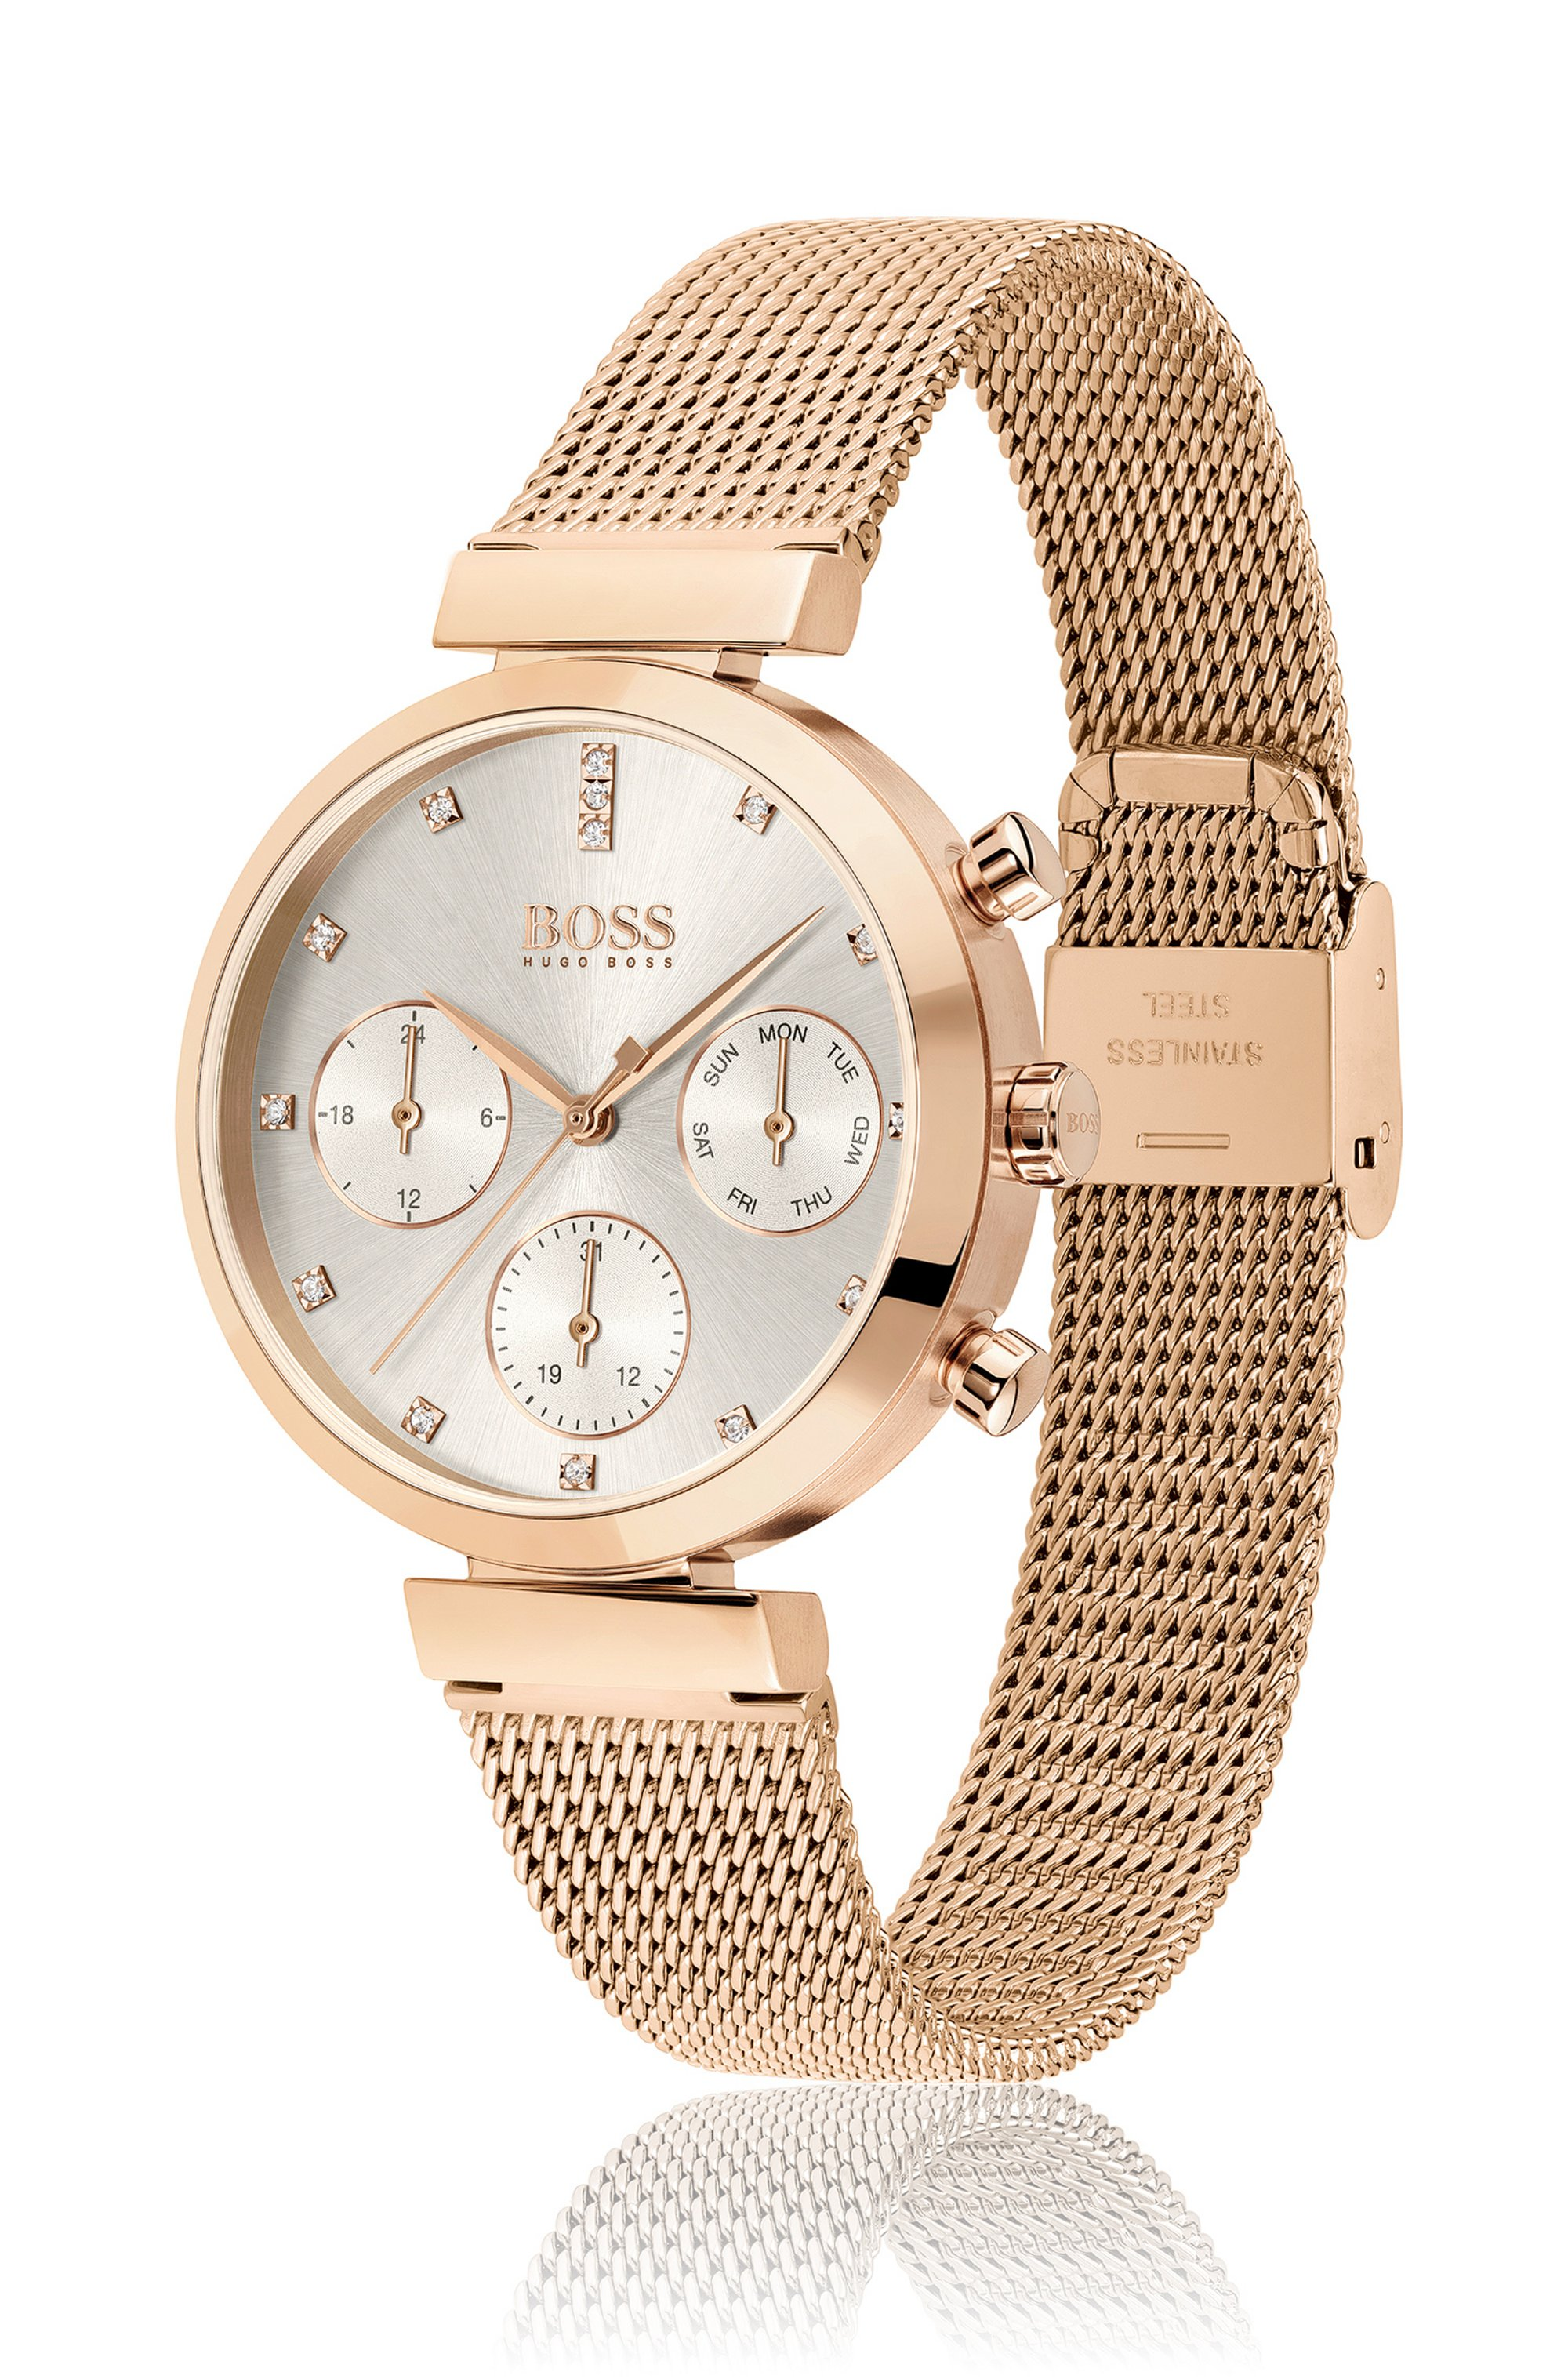 Carnation-gold-finish watch with crystal markers